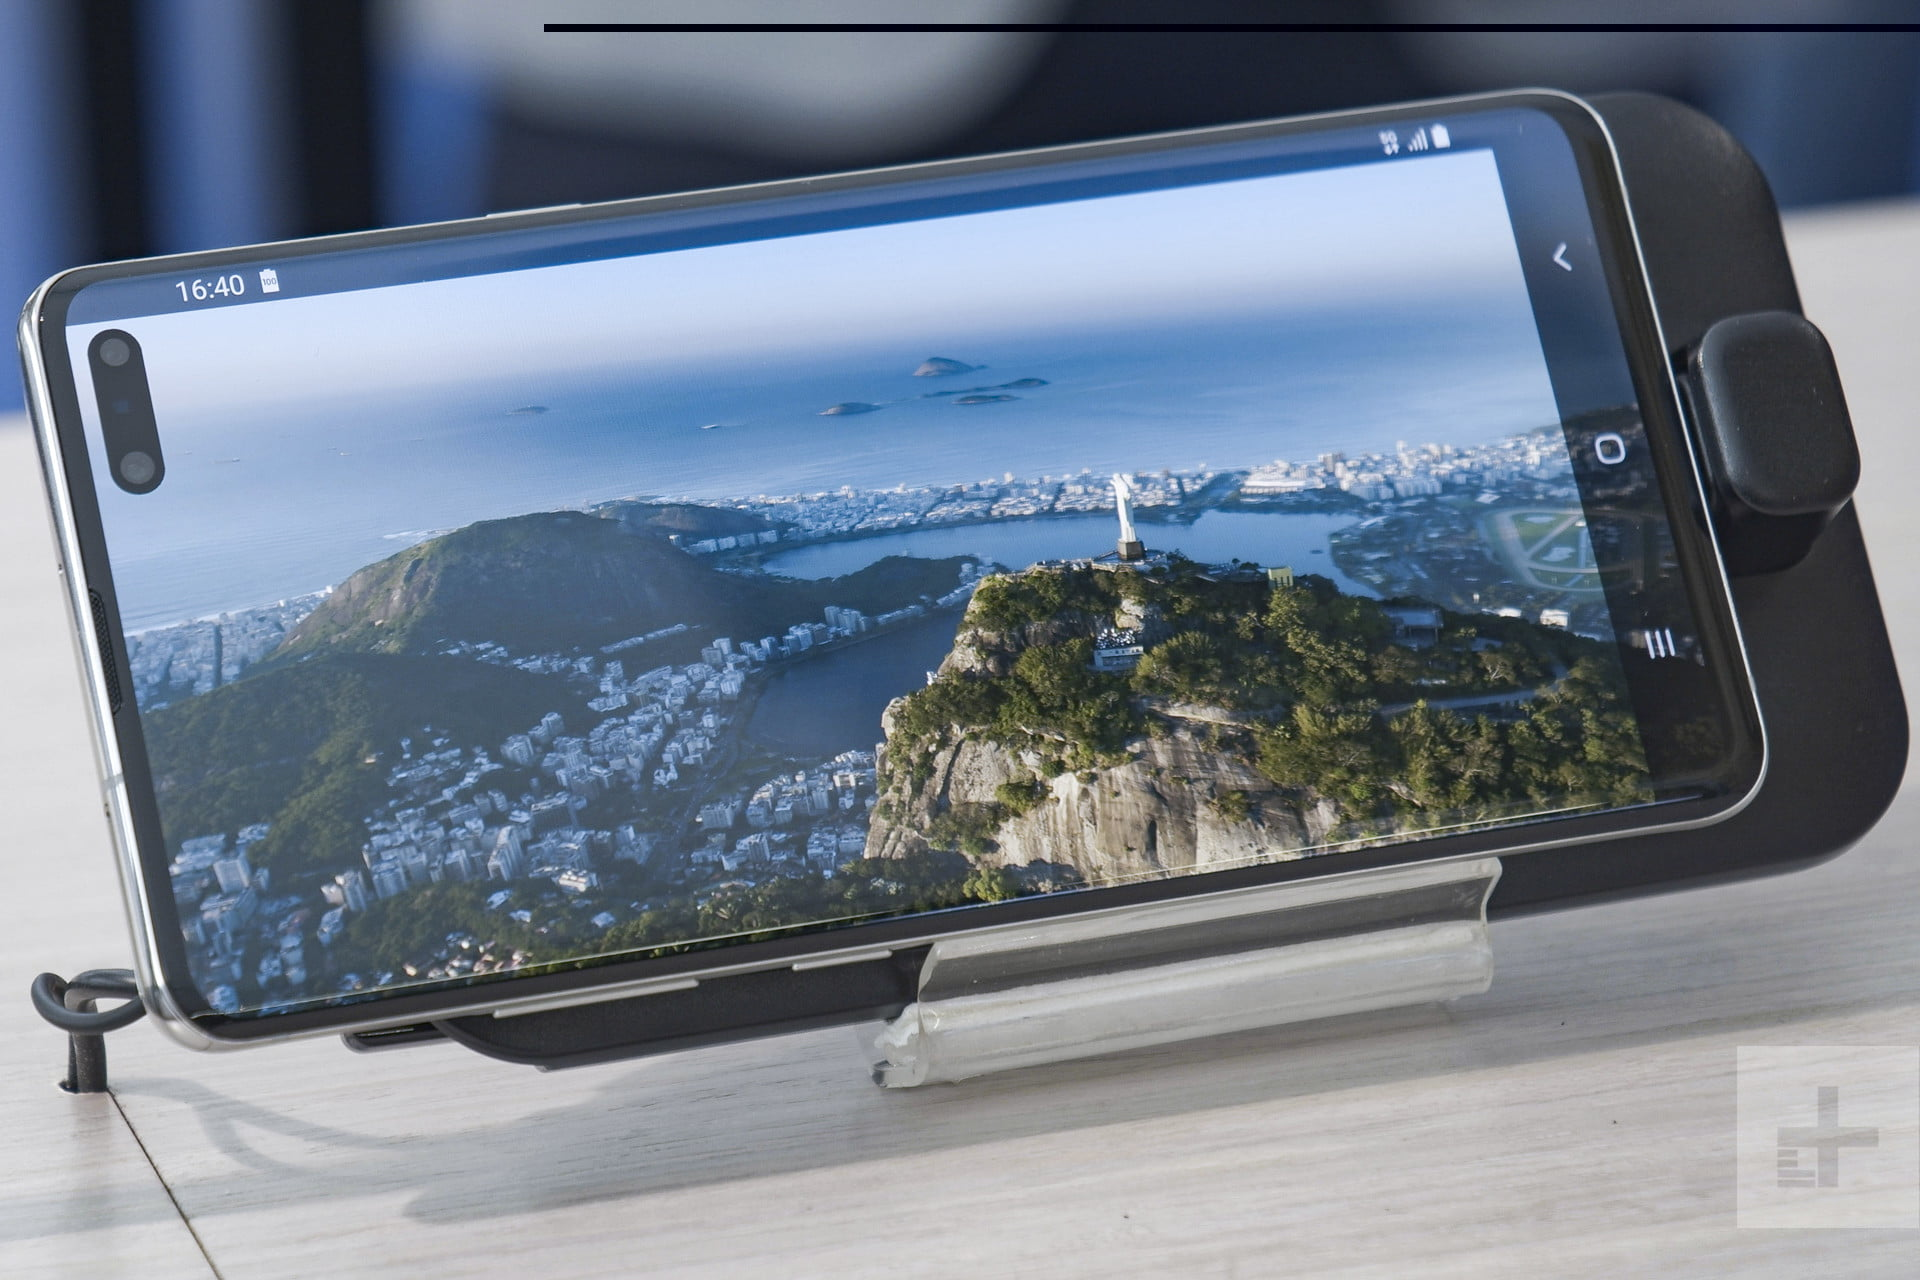 Samsung Galaxy S10 5G Hands-on Review | Digital Trends